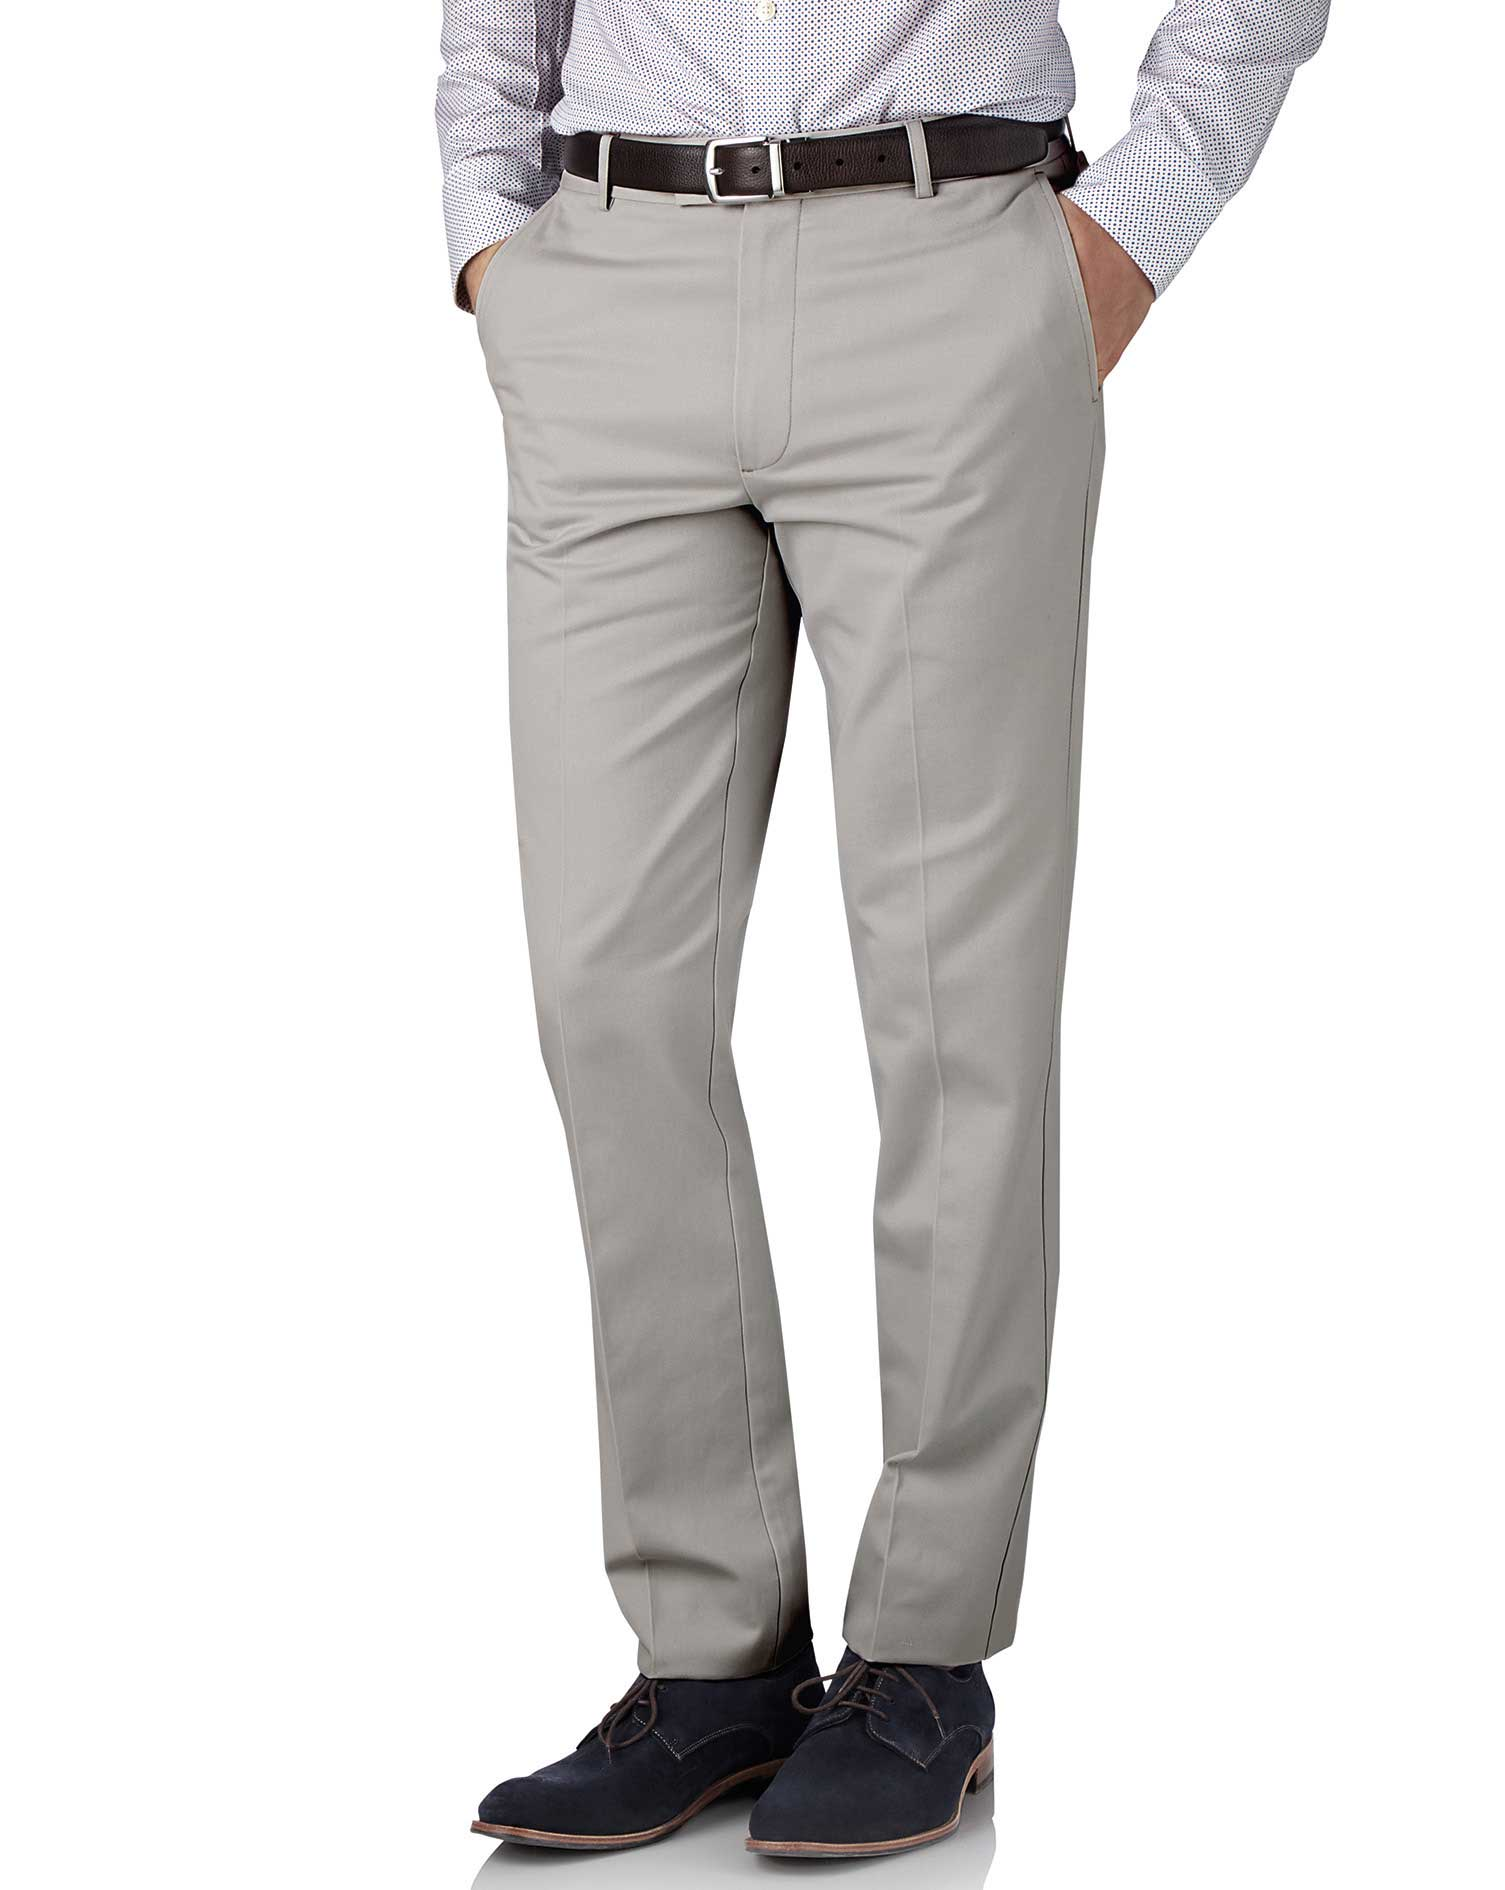 Silver Grey Slim Fit Flat Front Non-Iron Cotton Chino Trousers Size W38 L34 by Charles Tyrwhitt